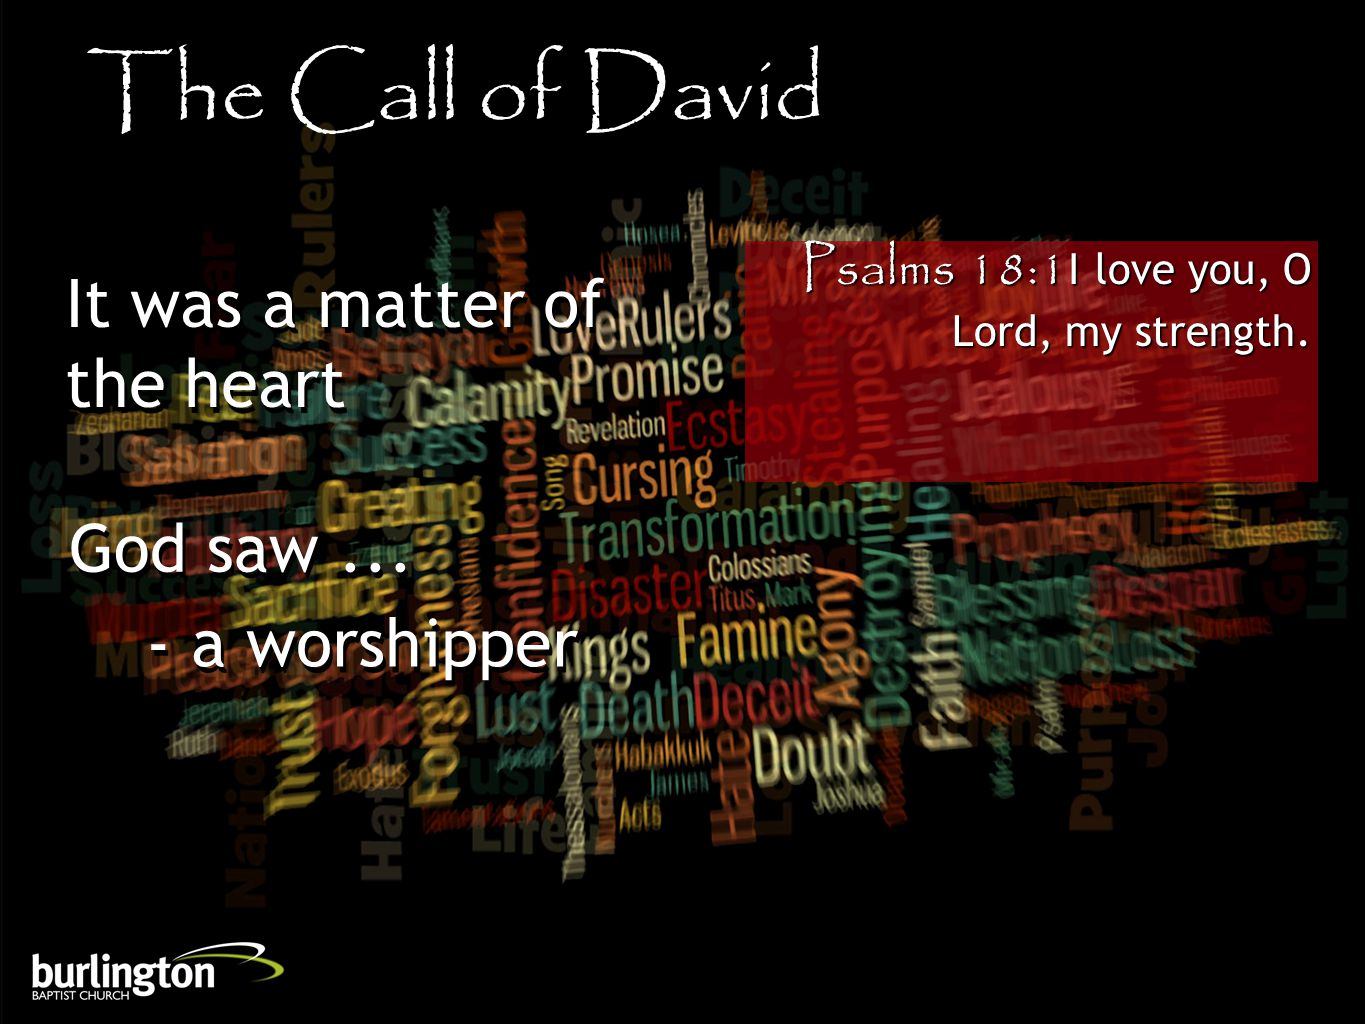 Psalms 18:1I love you, O Lord, my strength.